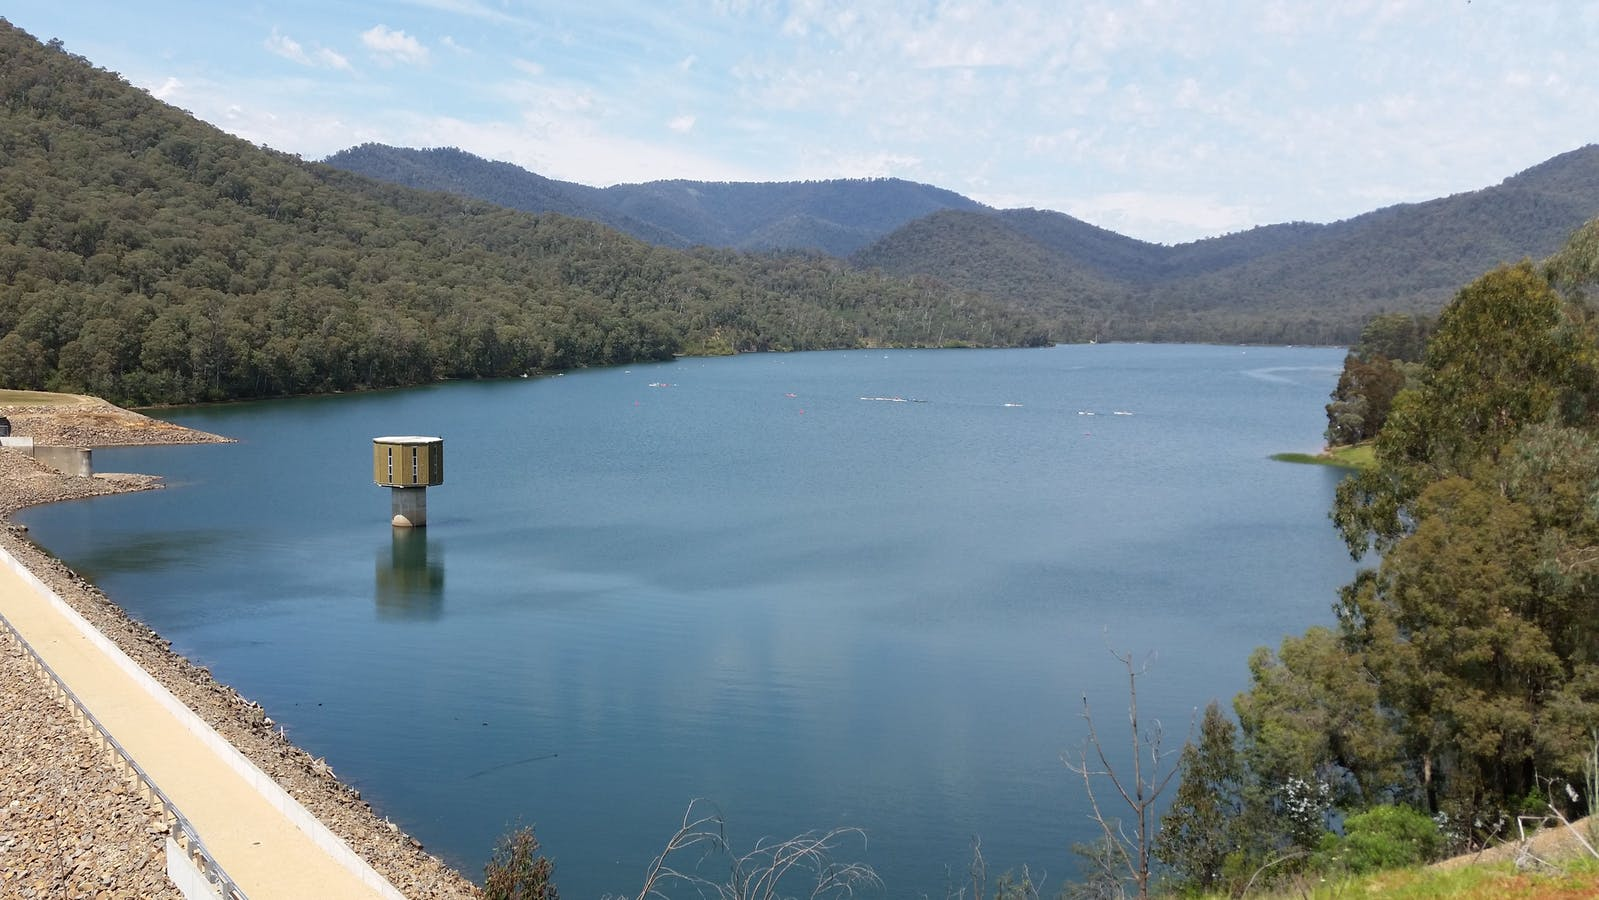 View of Lake William Hovell